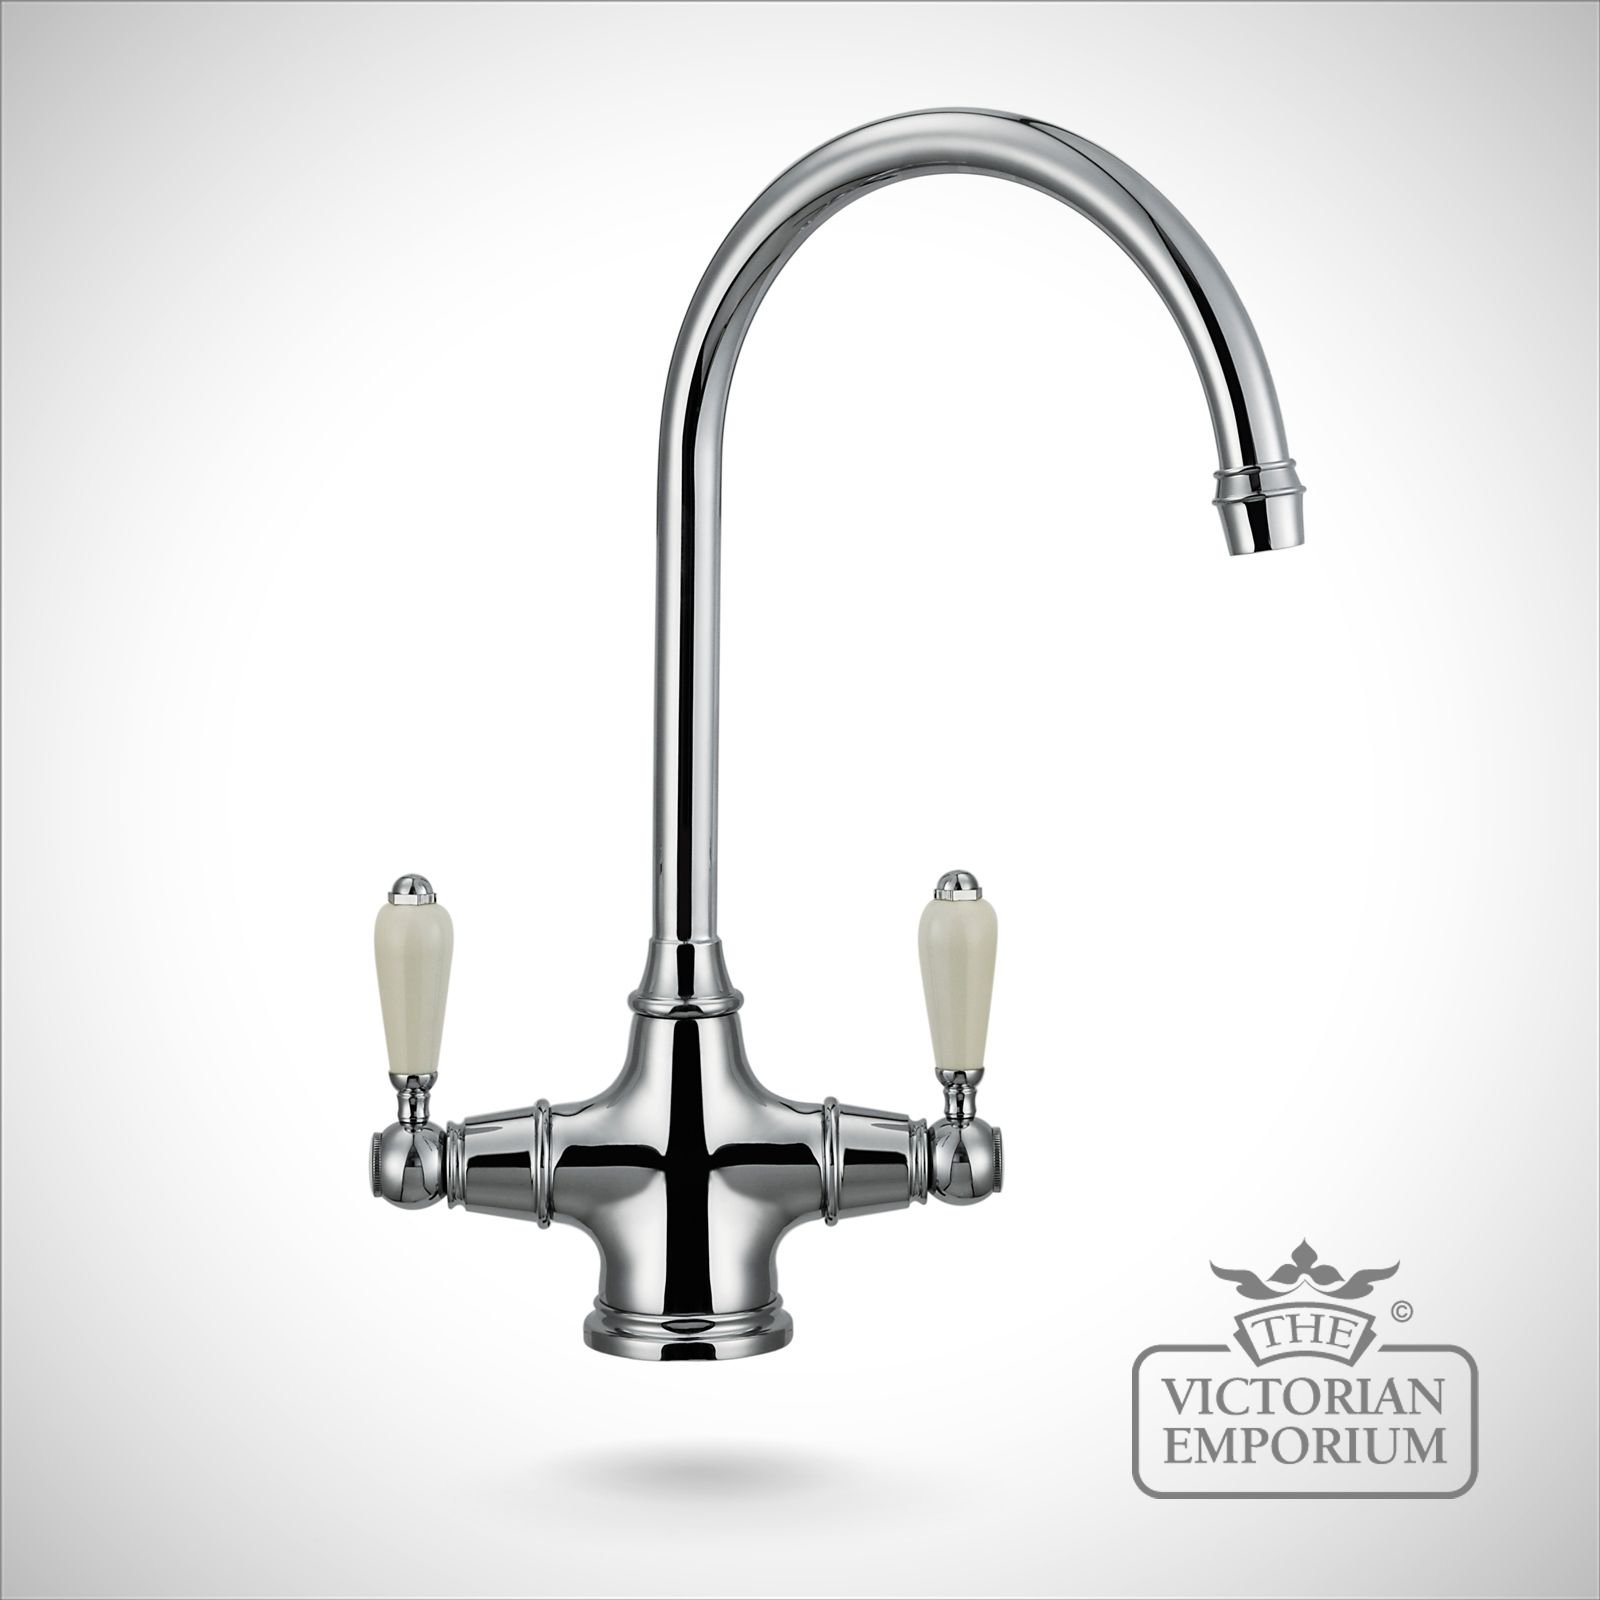 Venetian Kitchen tap | Kitchen taps and plugs